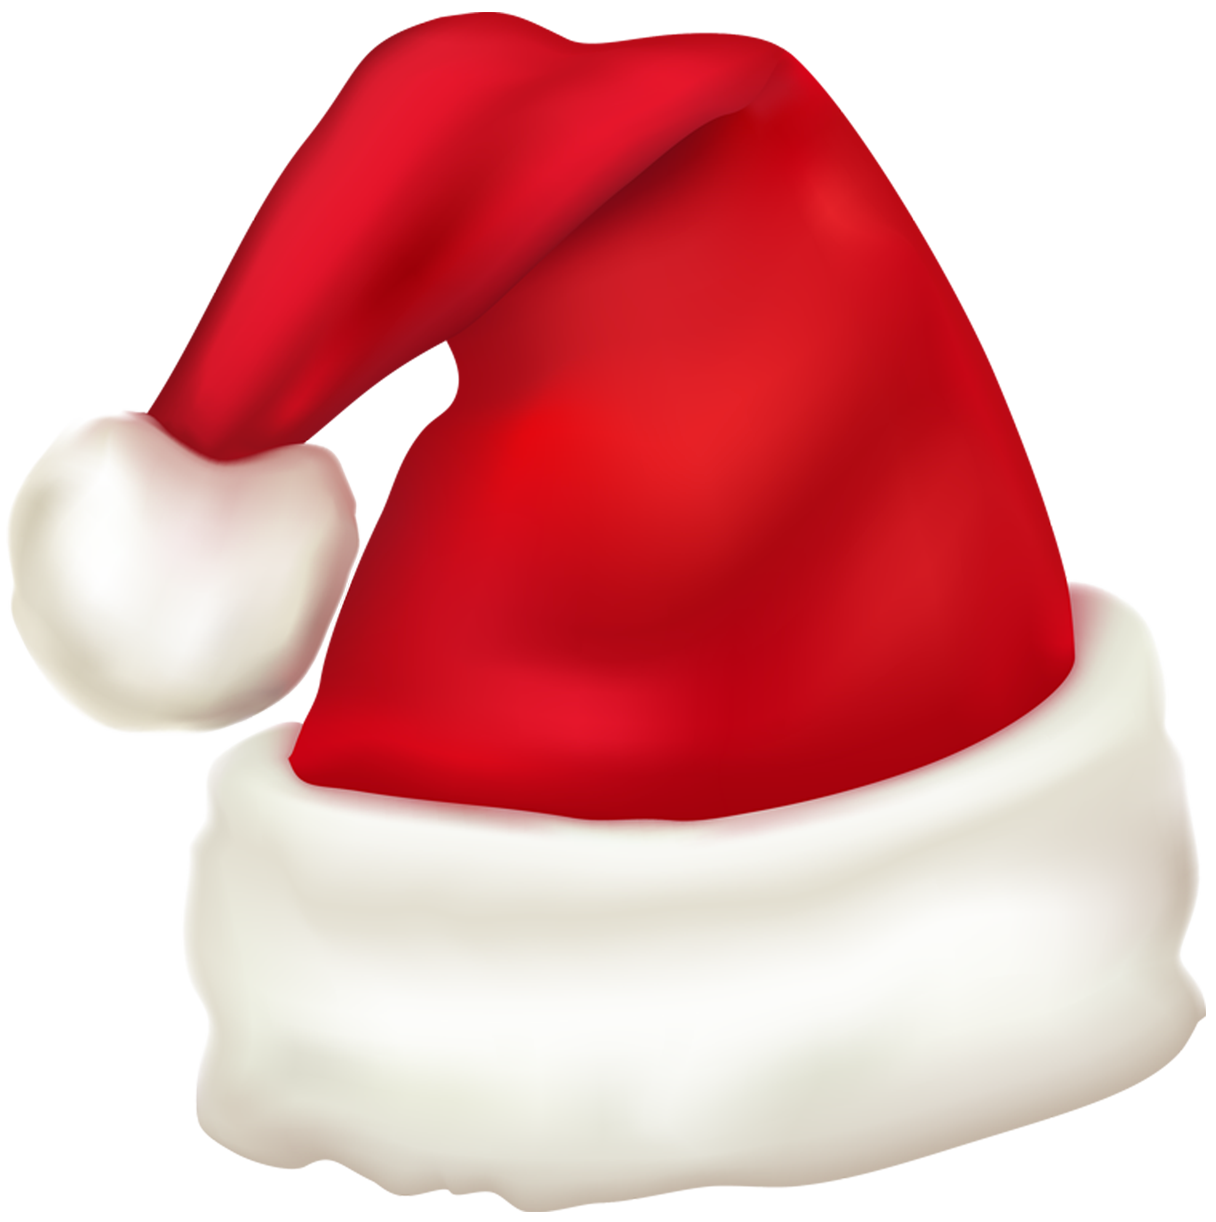 Transparent Christmas Hat.Santa Hat Png Transparent Background Christmas